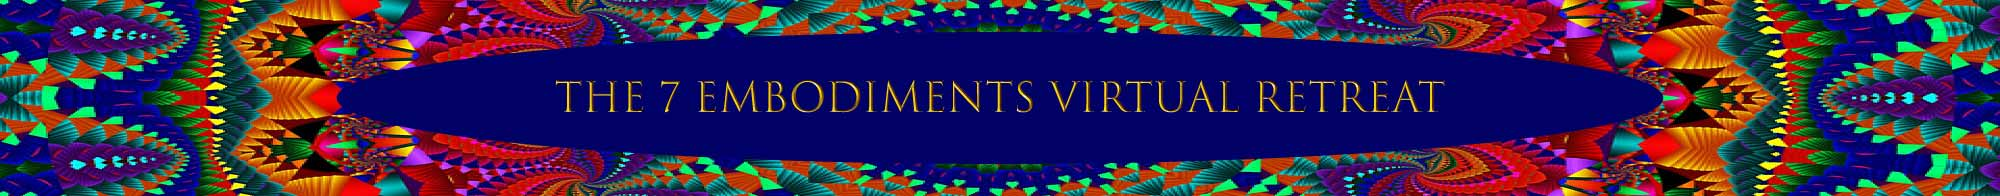 7 embodiments virtual retreat | Expand with Julius and Xpnsion Network